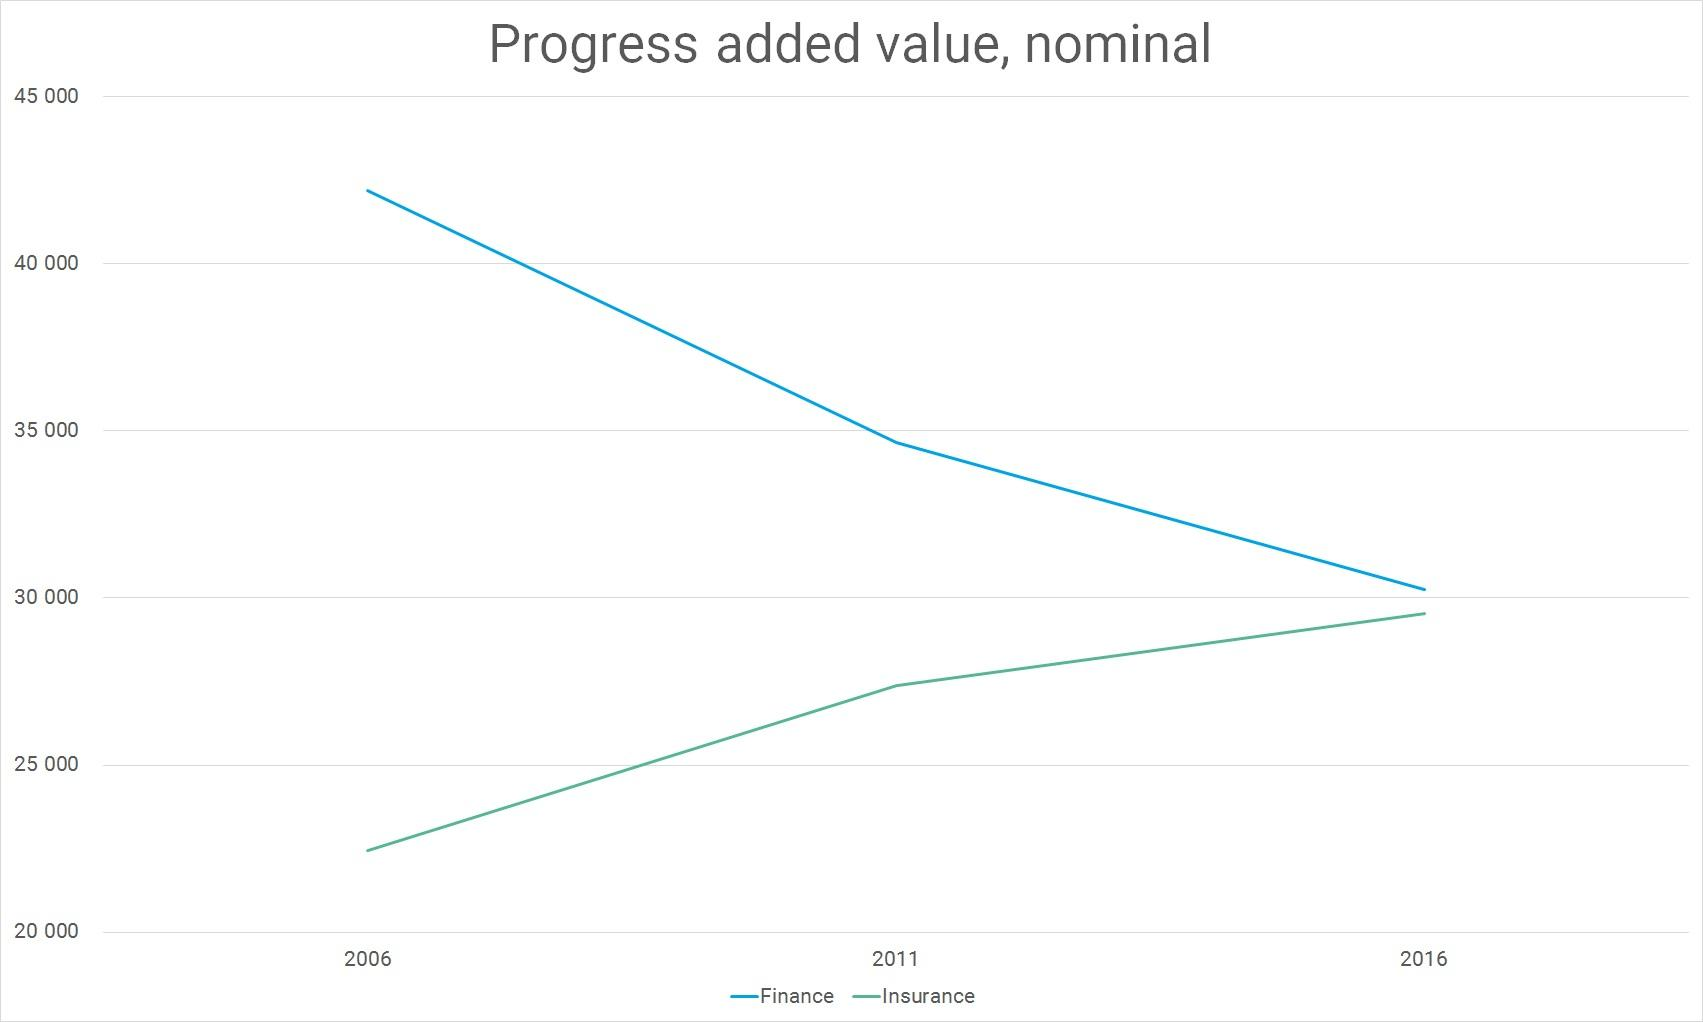 Progress added value